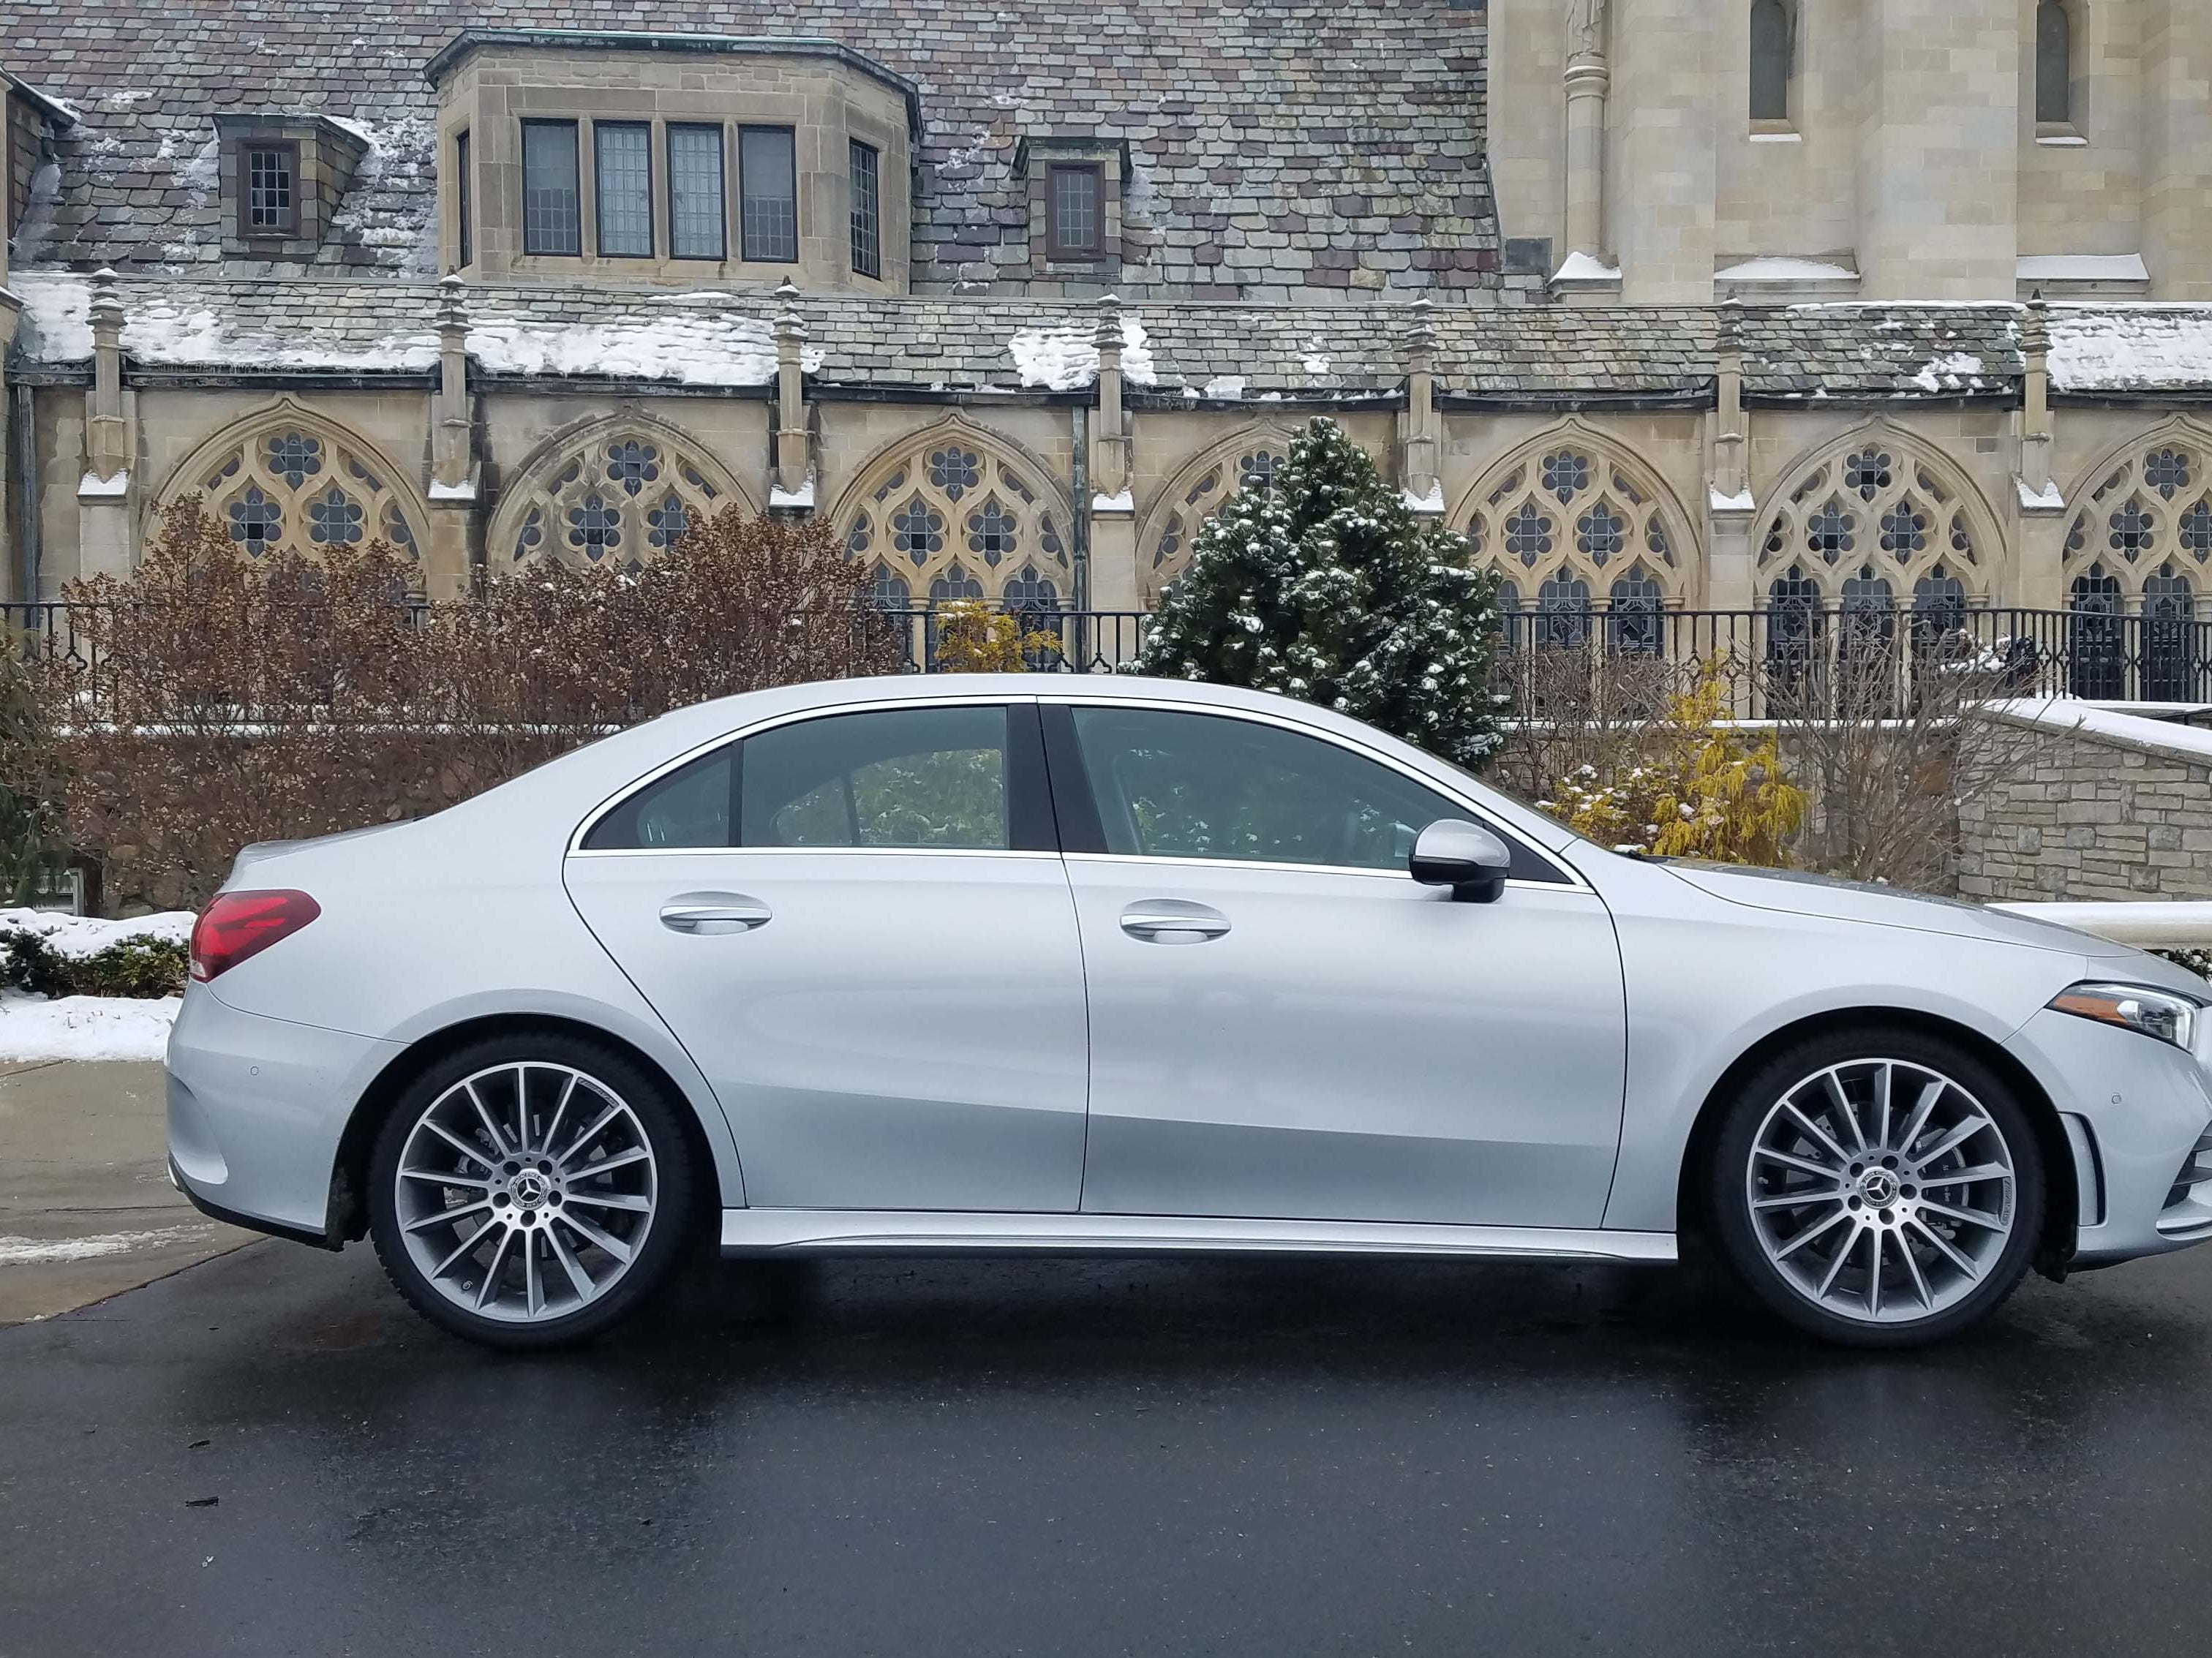 The Mercedes A220 design (seen here)  is more conservative that the CLA coupe sedan — which will still be offered alongside the A220, but at a higher price tag to account for its sexy looks.